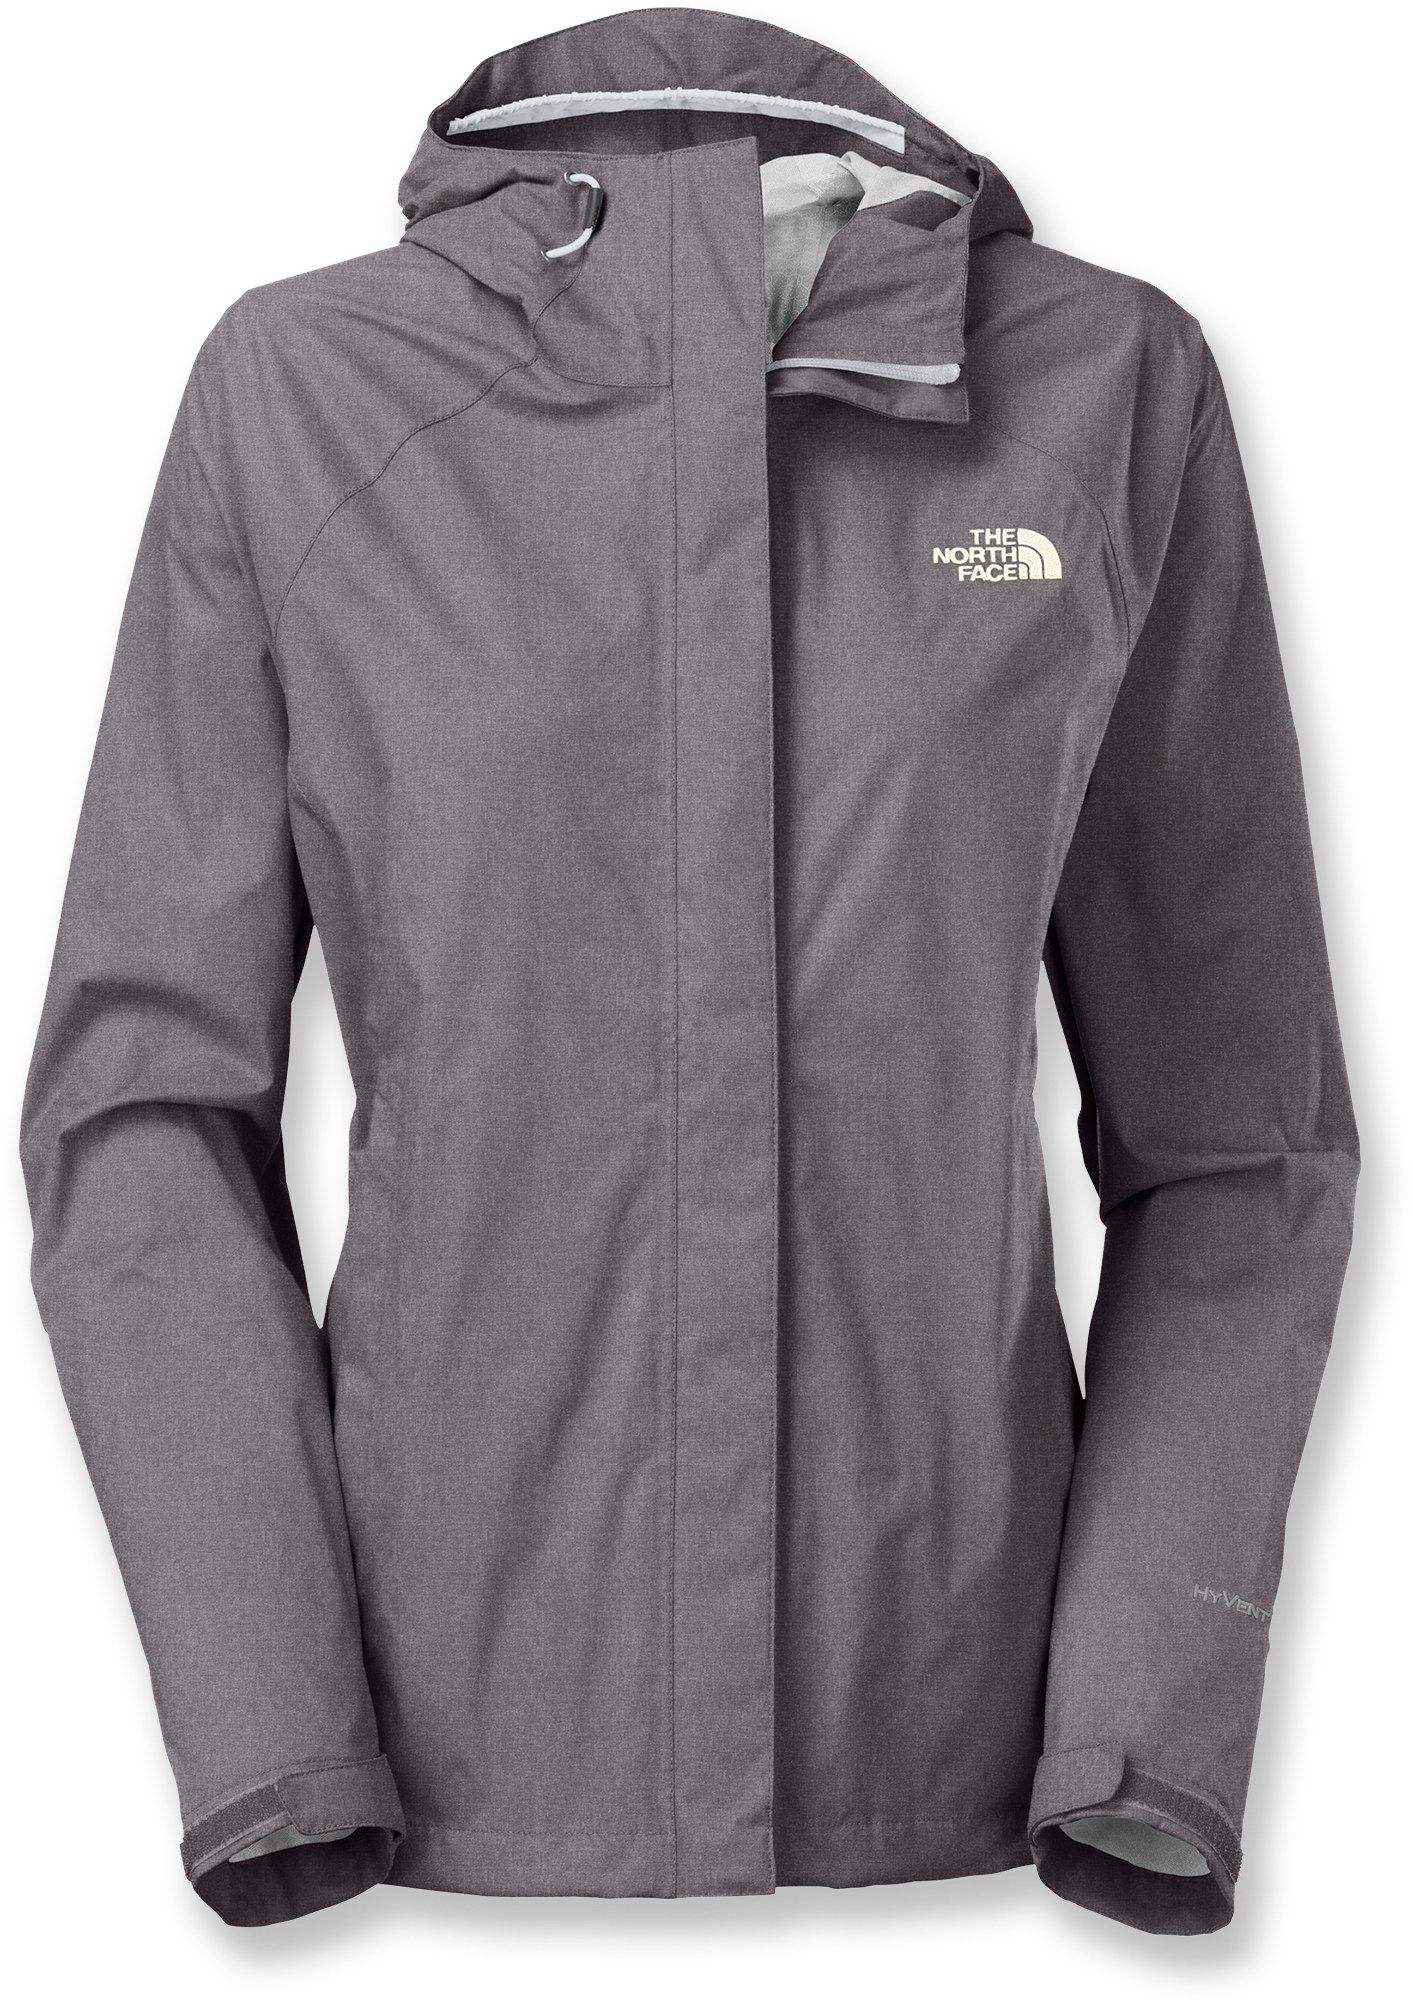 48f50bd8c9 The North Face Venture Rain Jacket - Women s - High Rise Grey Heather Large